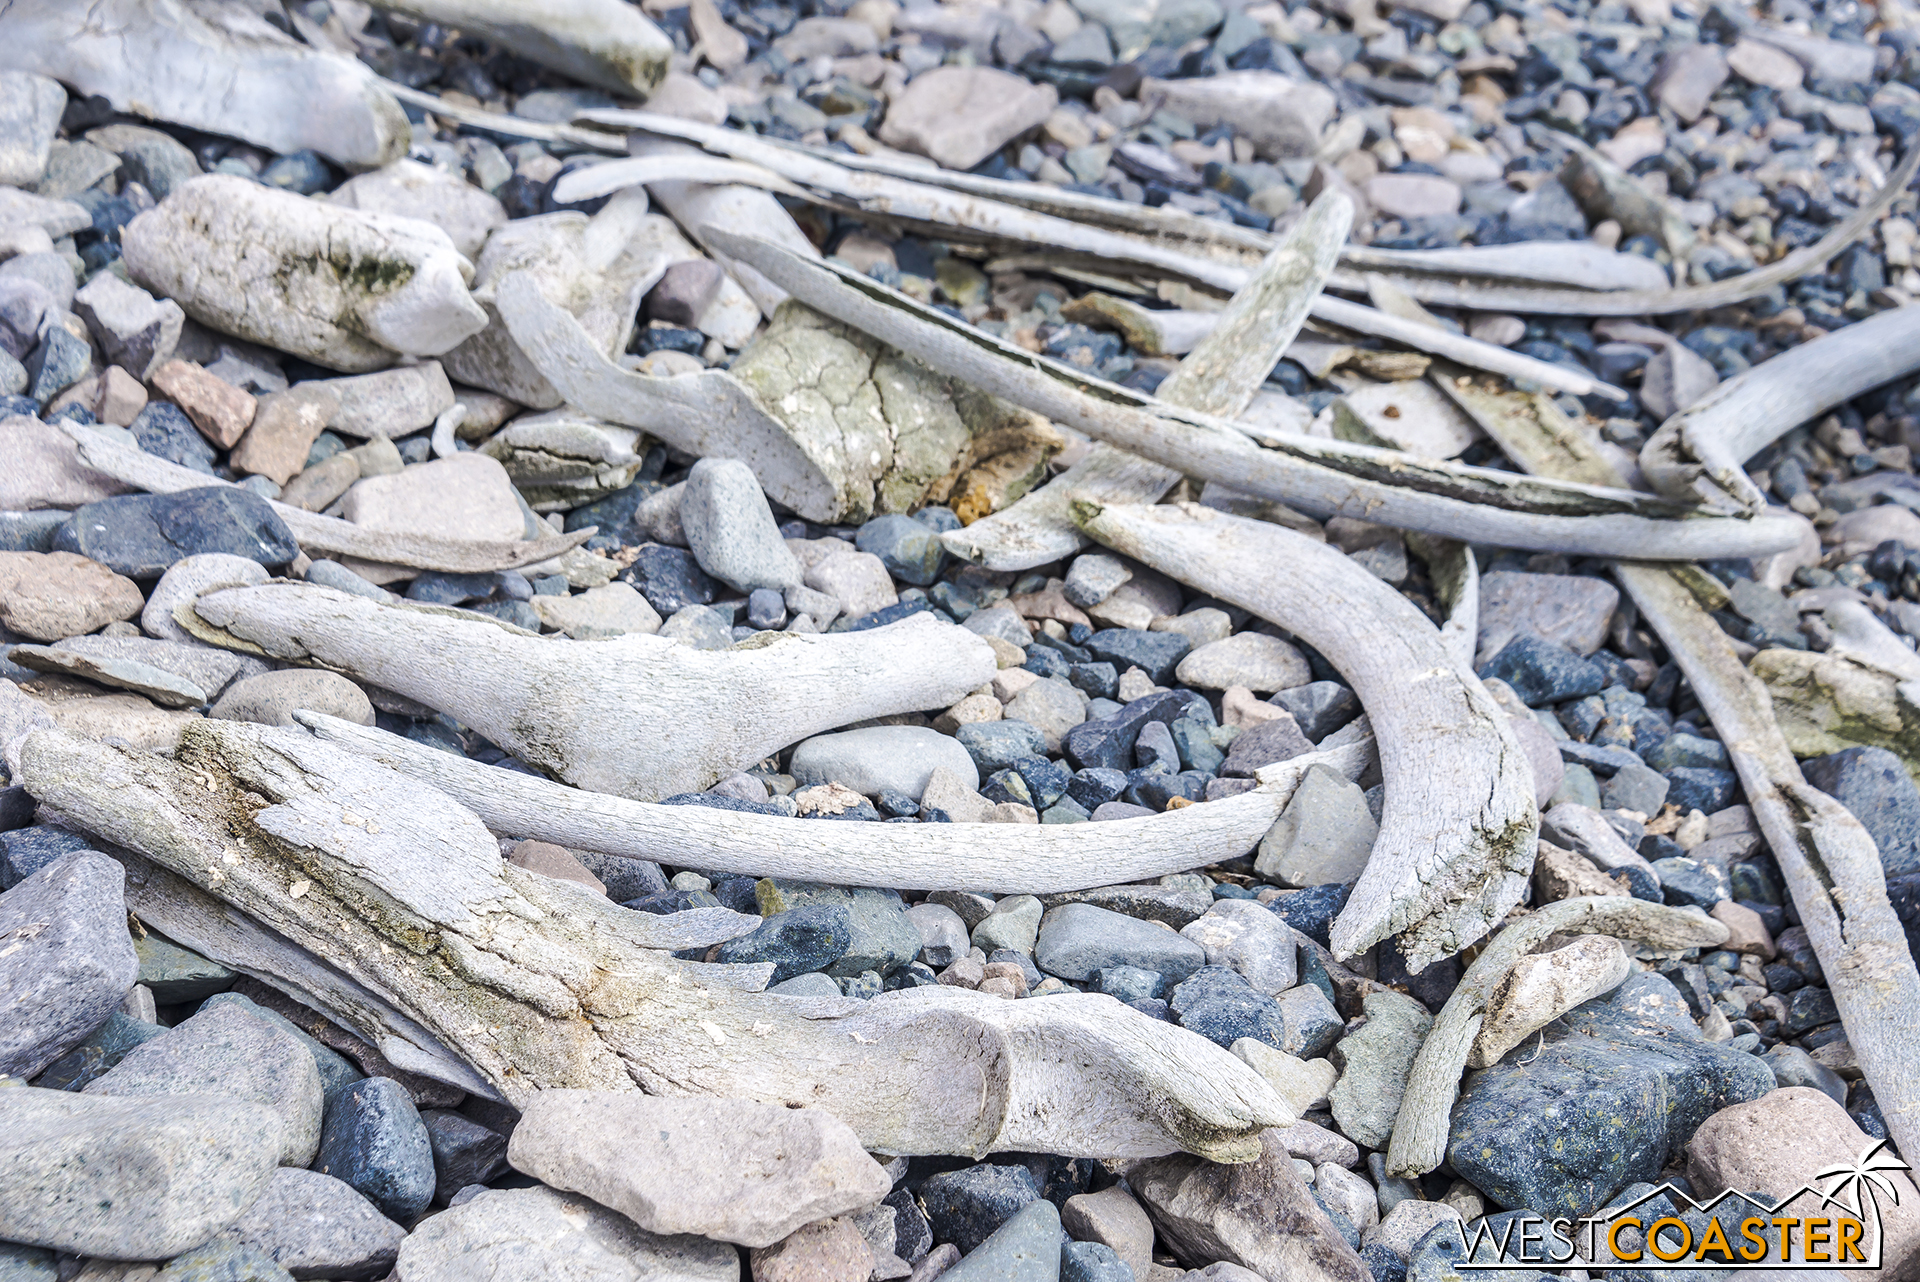 Whalebones are scattered among the rocks of the coast.